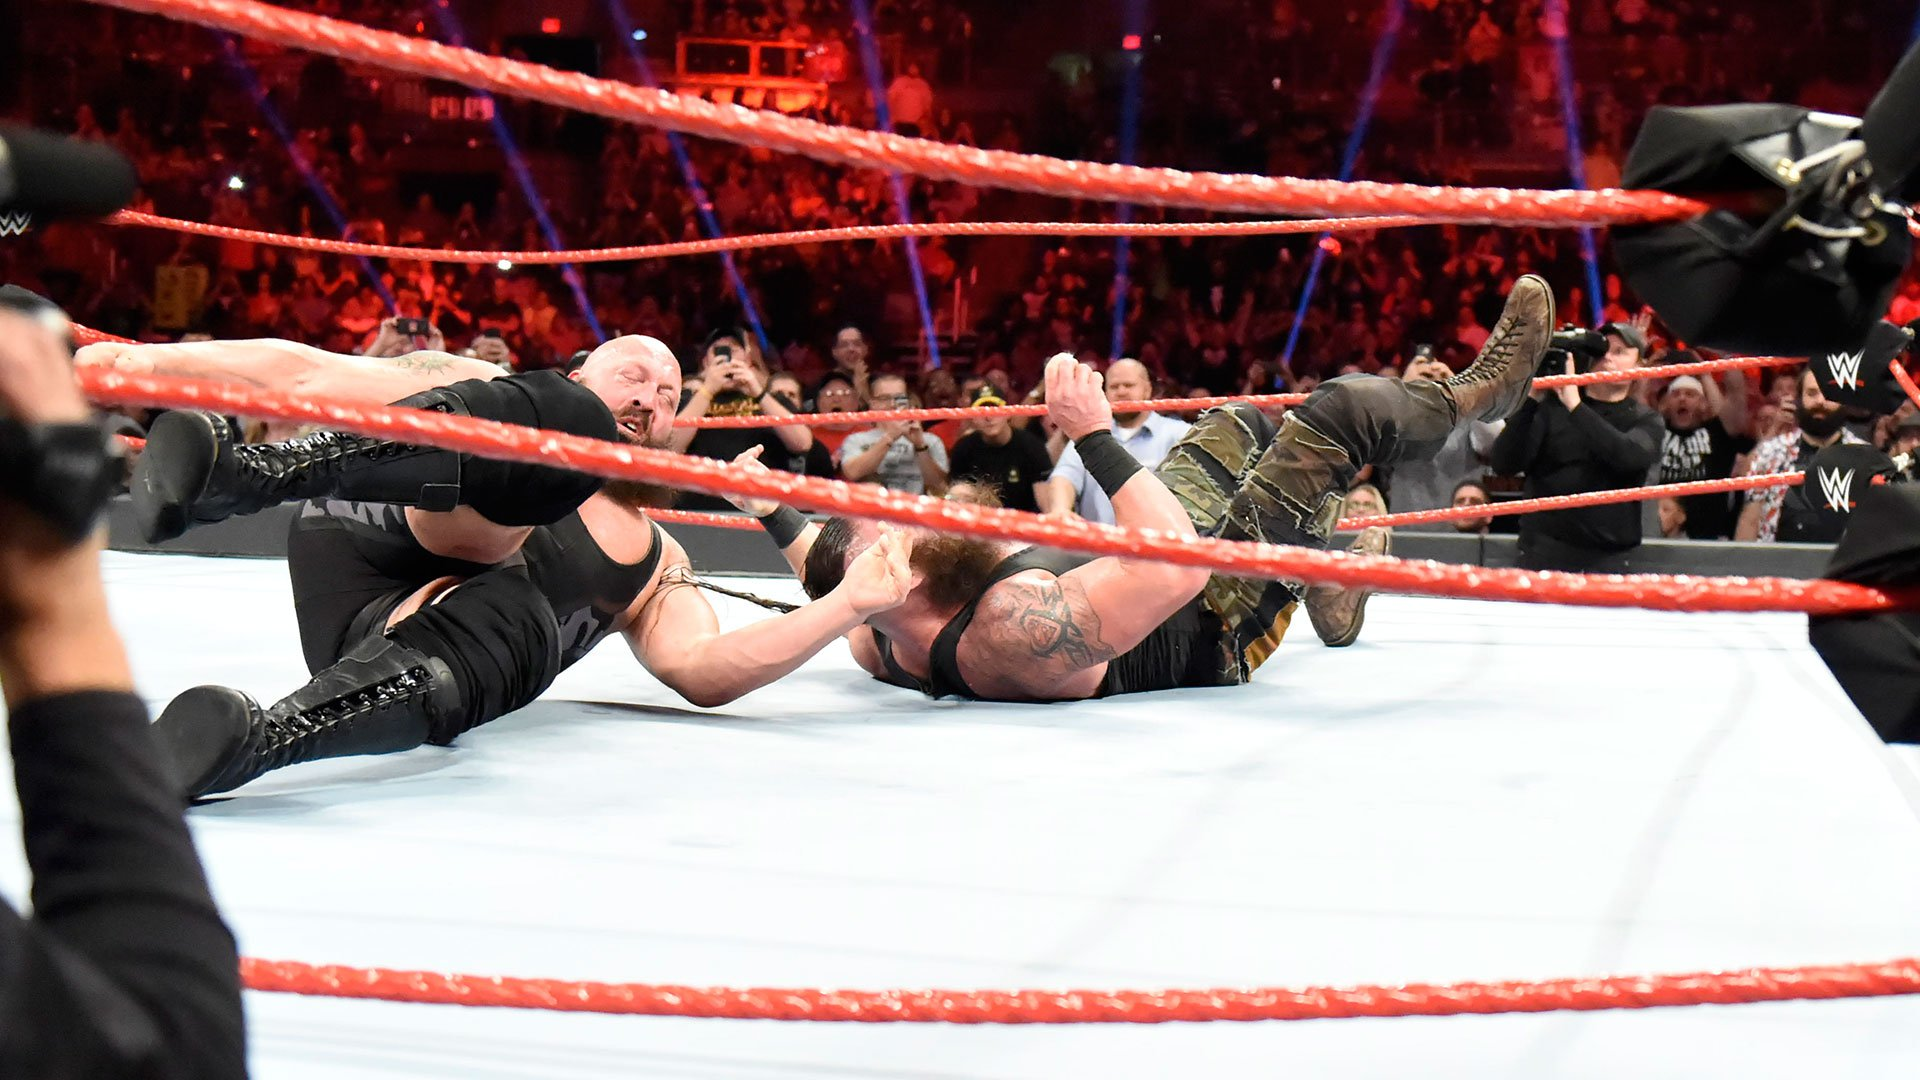 Strowman and Big Show hit the canvas with earth-shaking impact.